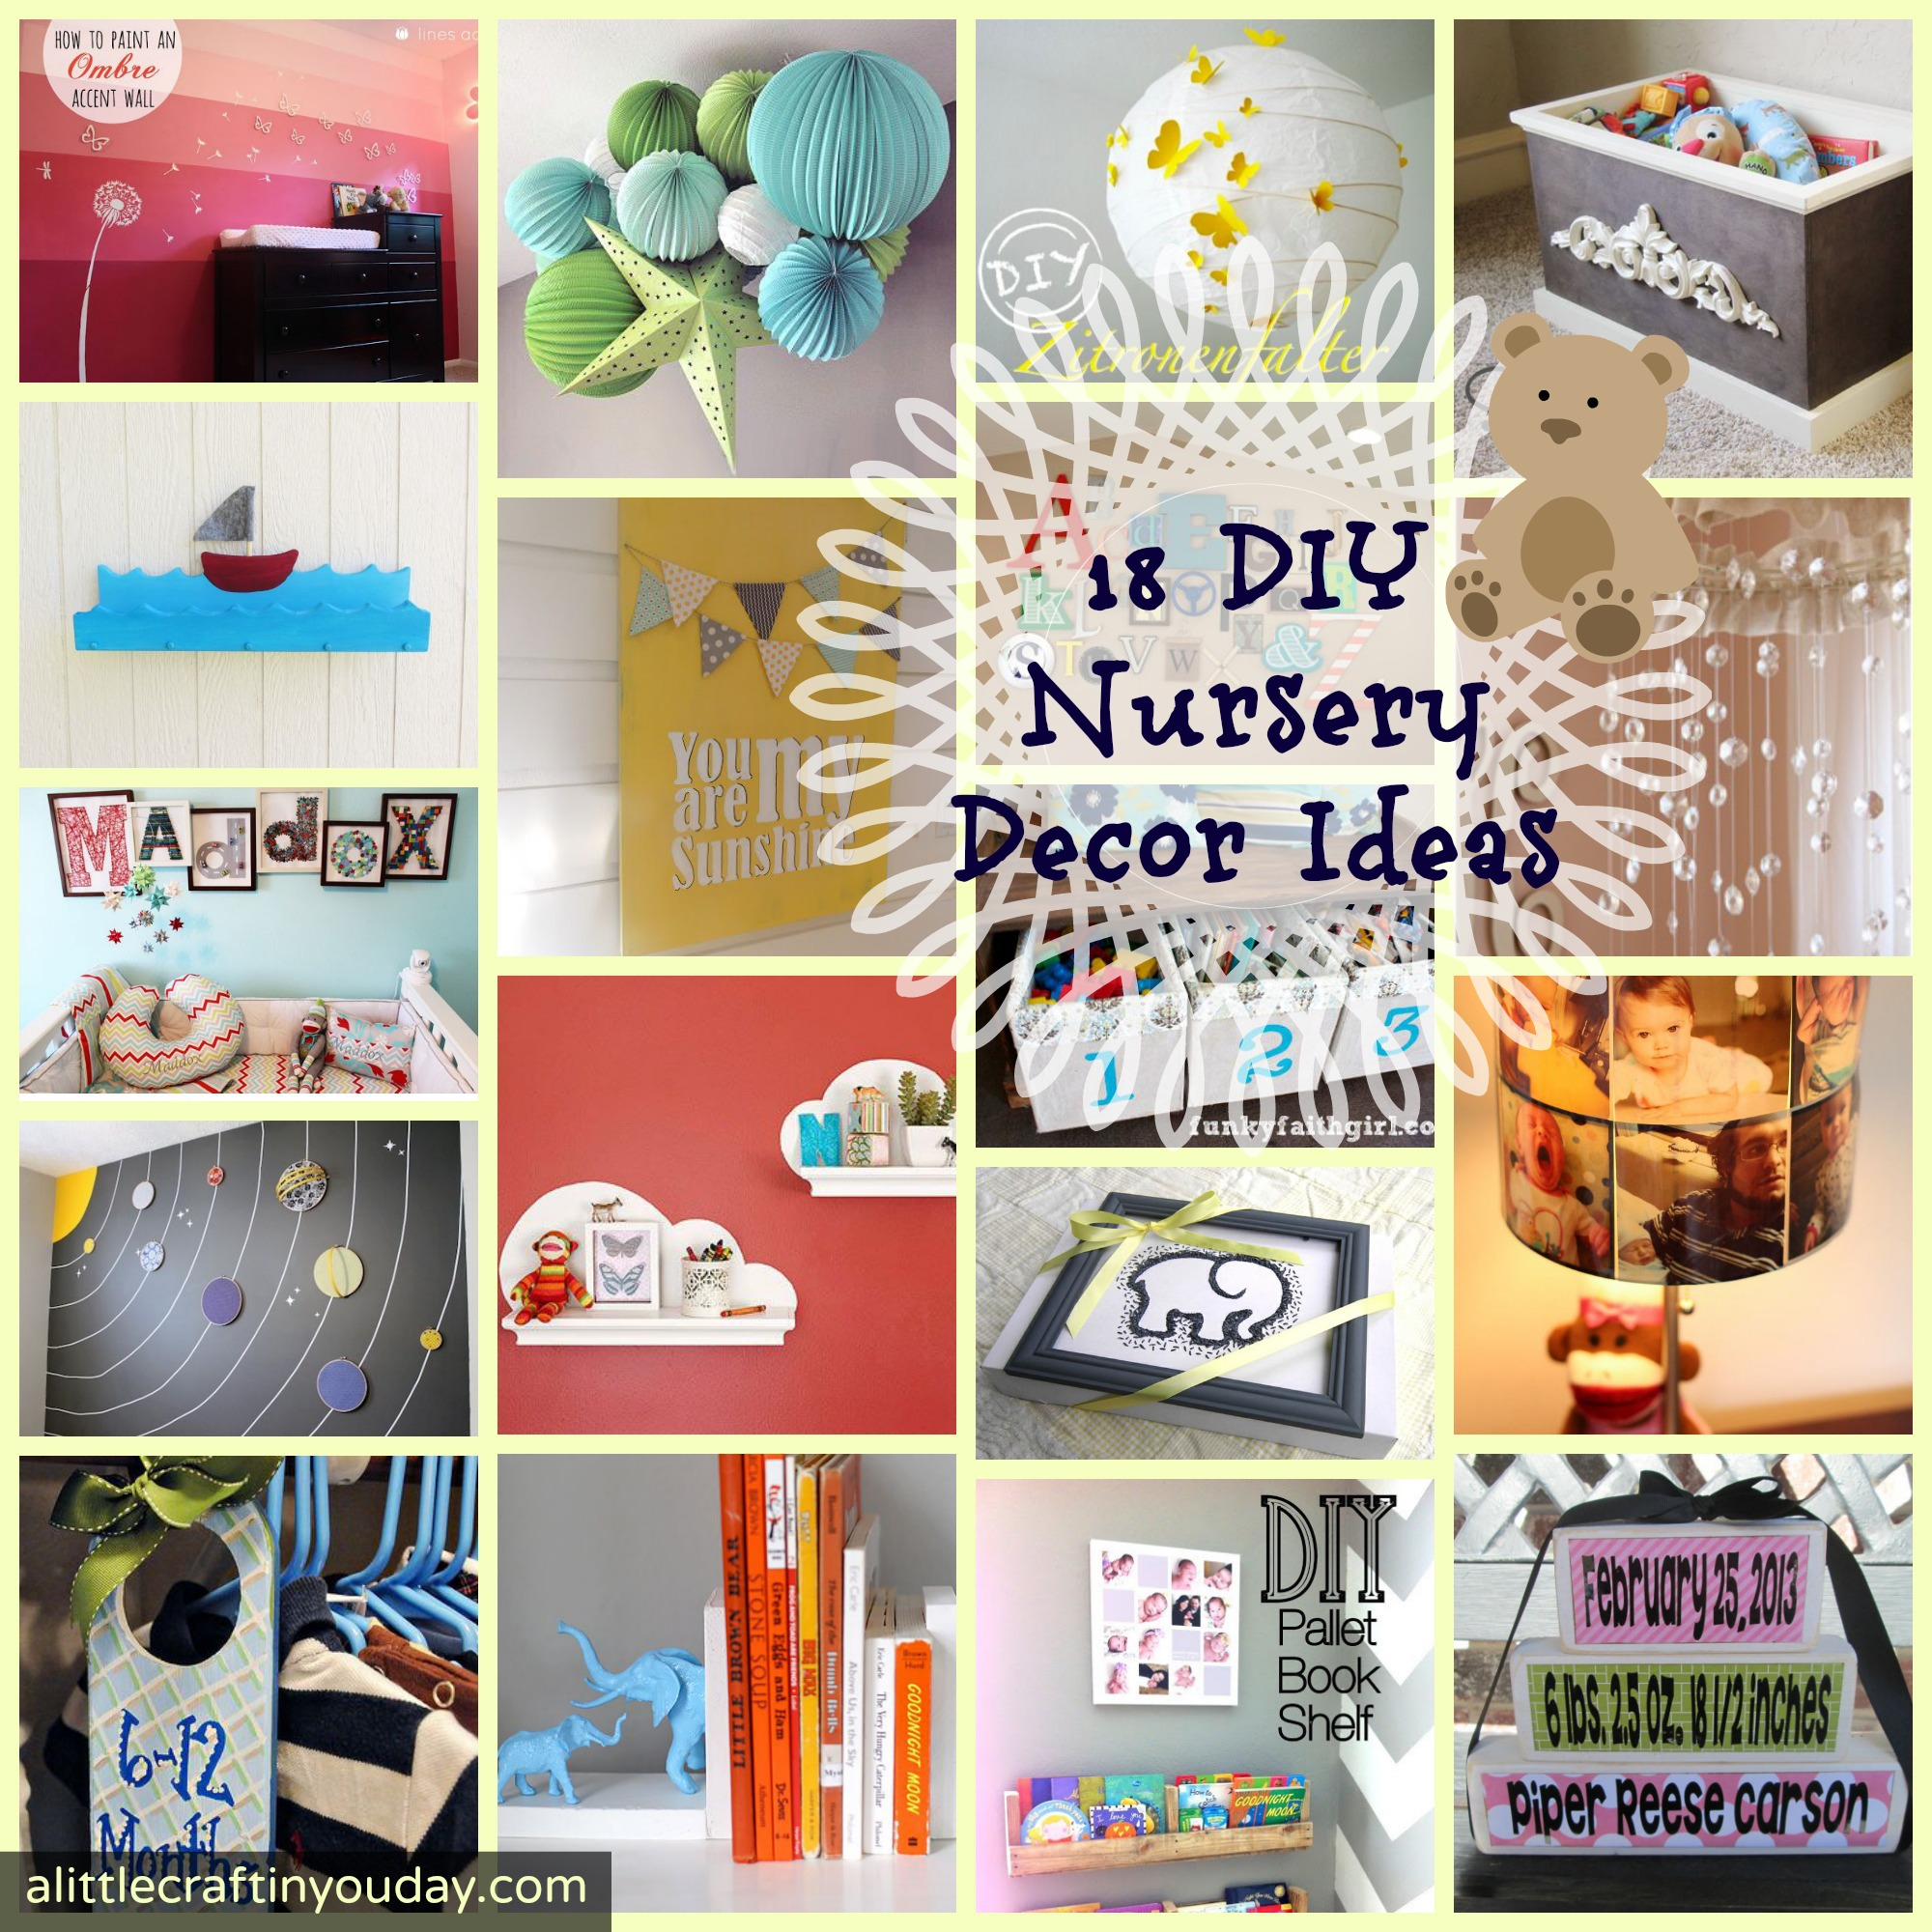 nursery art and craft ideas 18 diy nursery decor ideas a craft in your day 6972